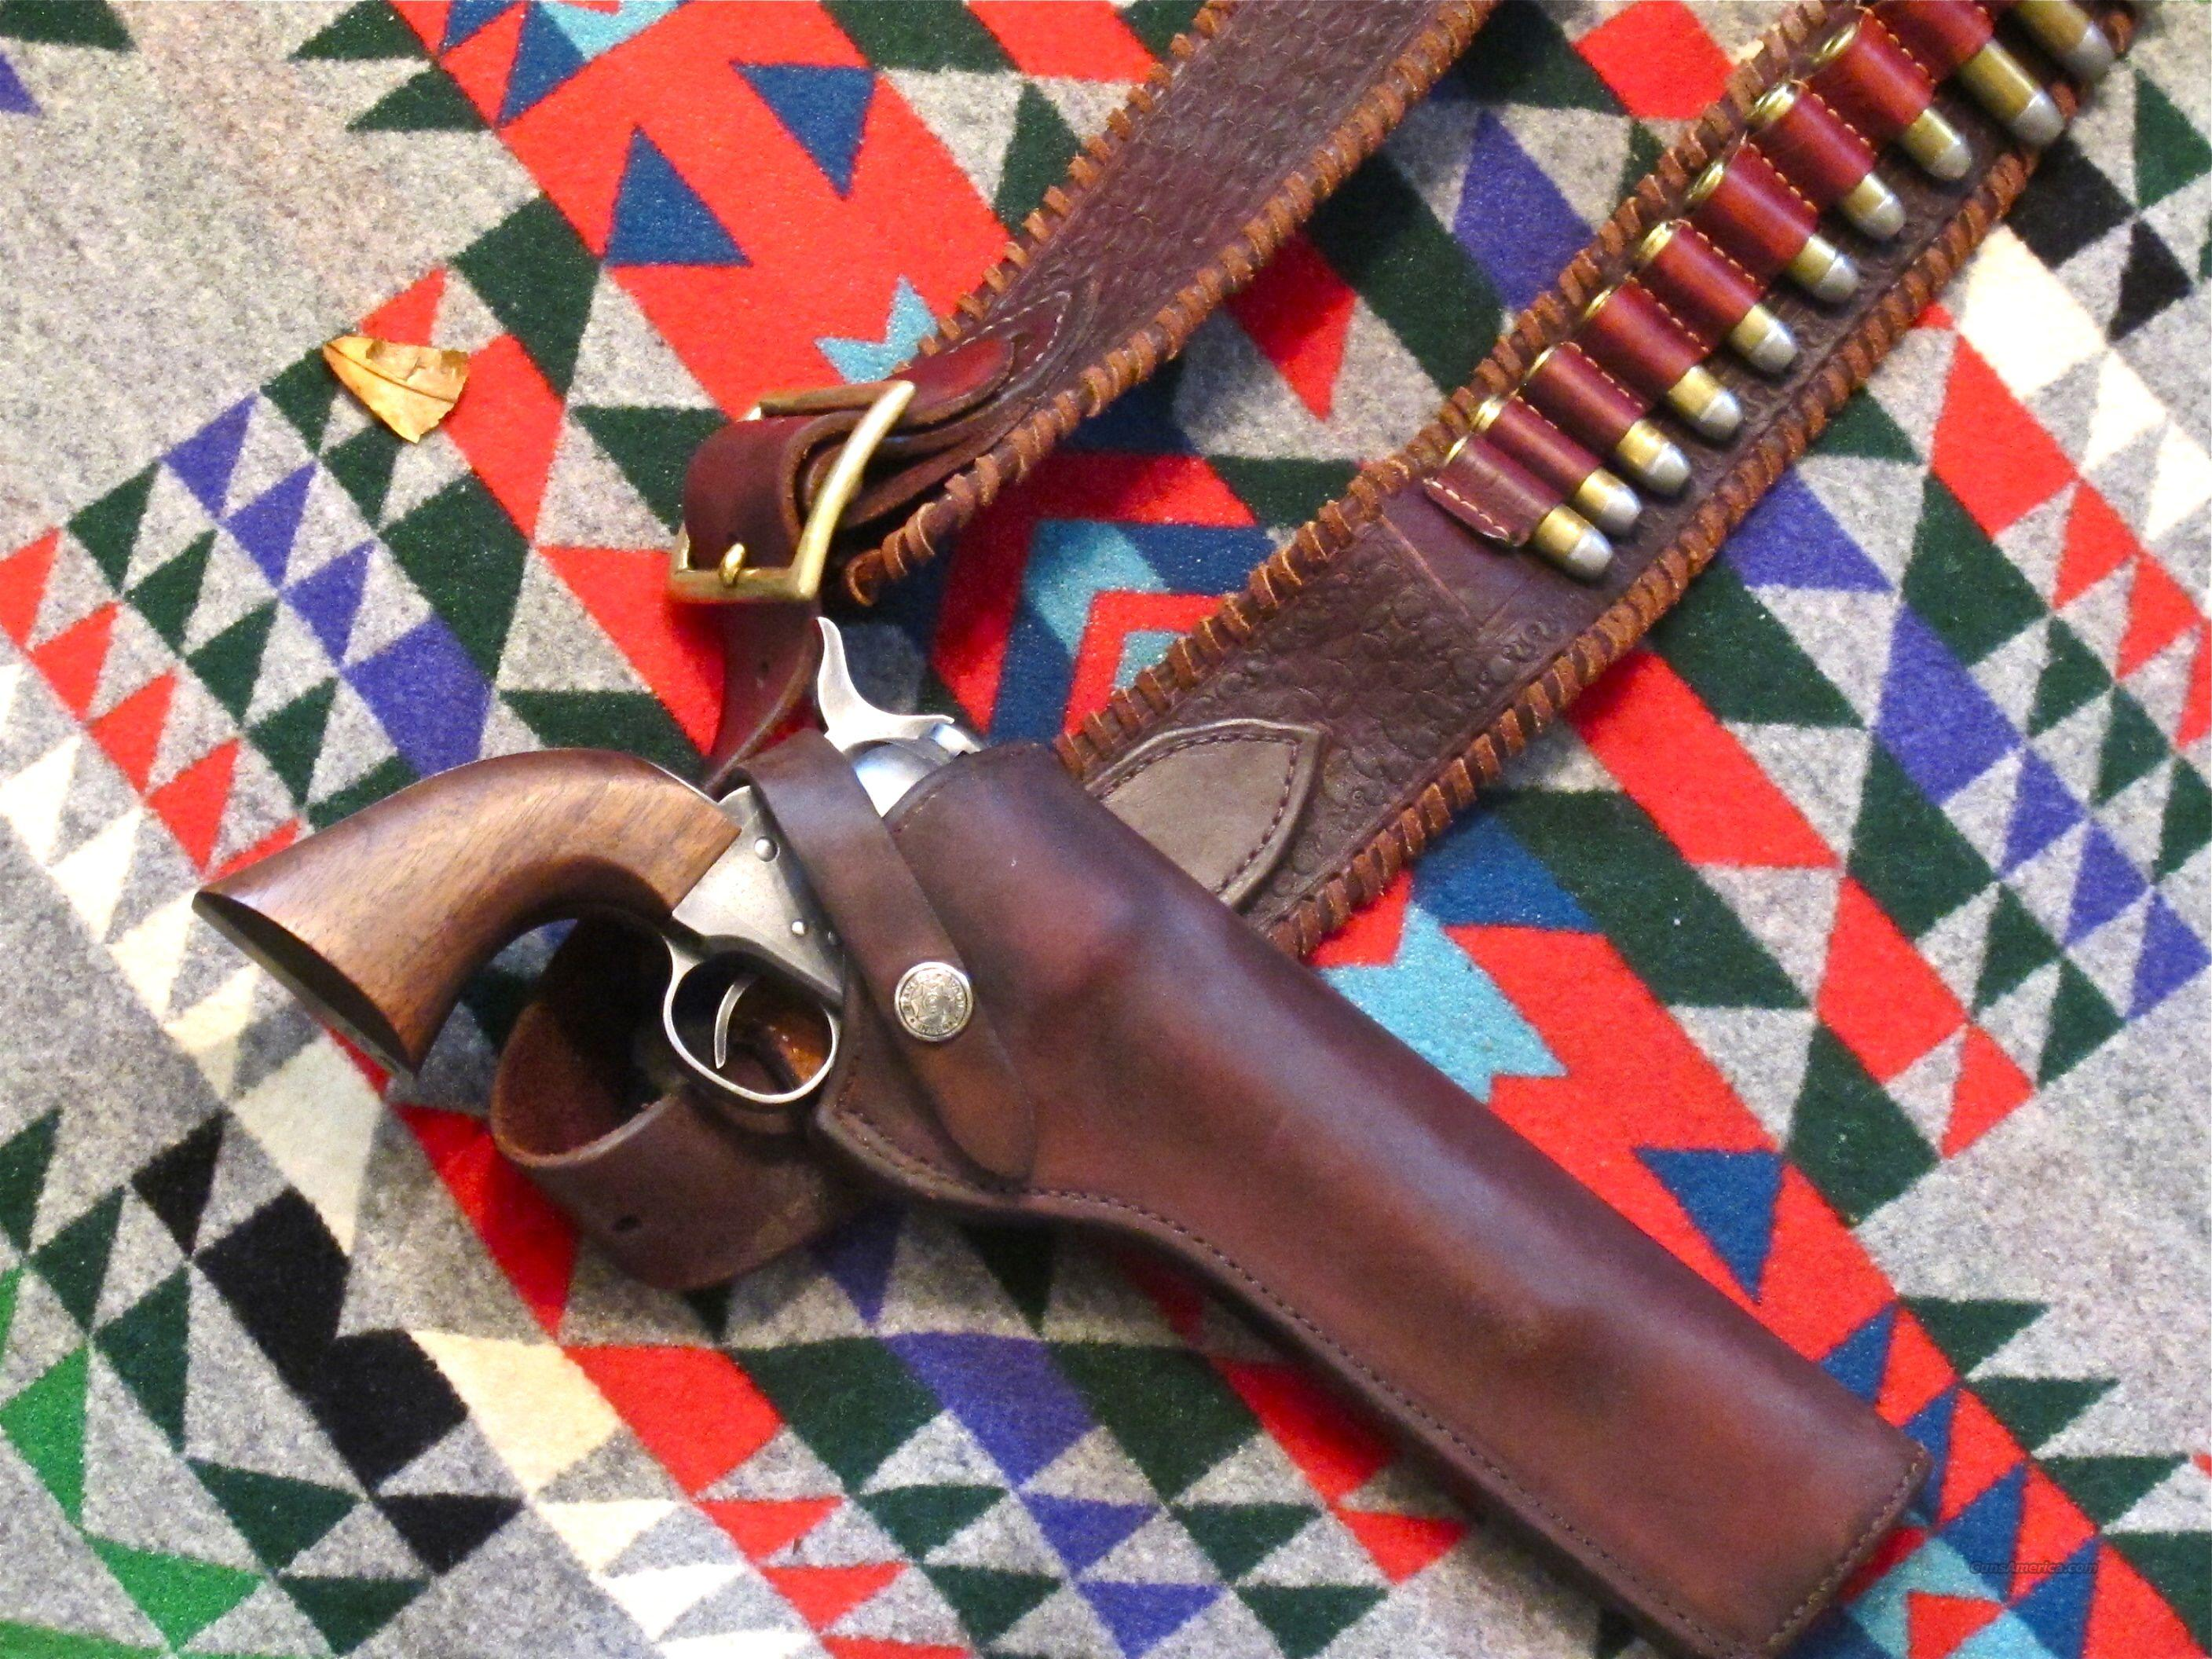 USFA Gunslinger 44-40 frontier six shooter 7 1/2 Barrel, with Vintage Rig  Guns > Pistols > United States Patent Firearms Revolvers/Pistols